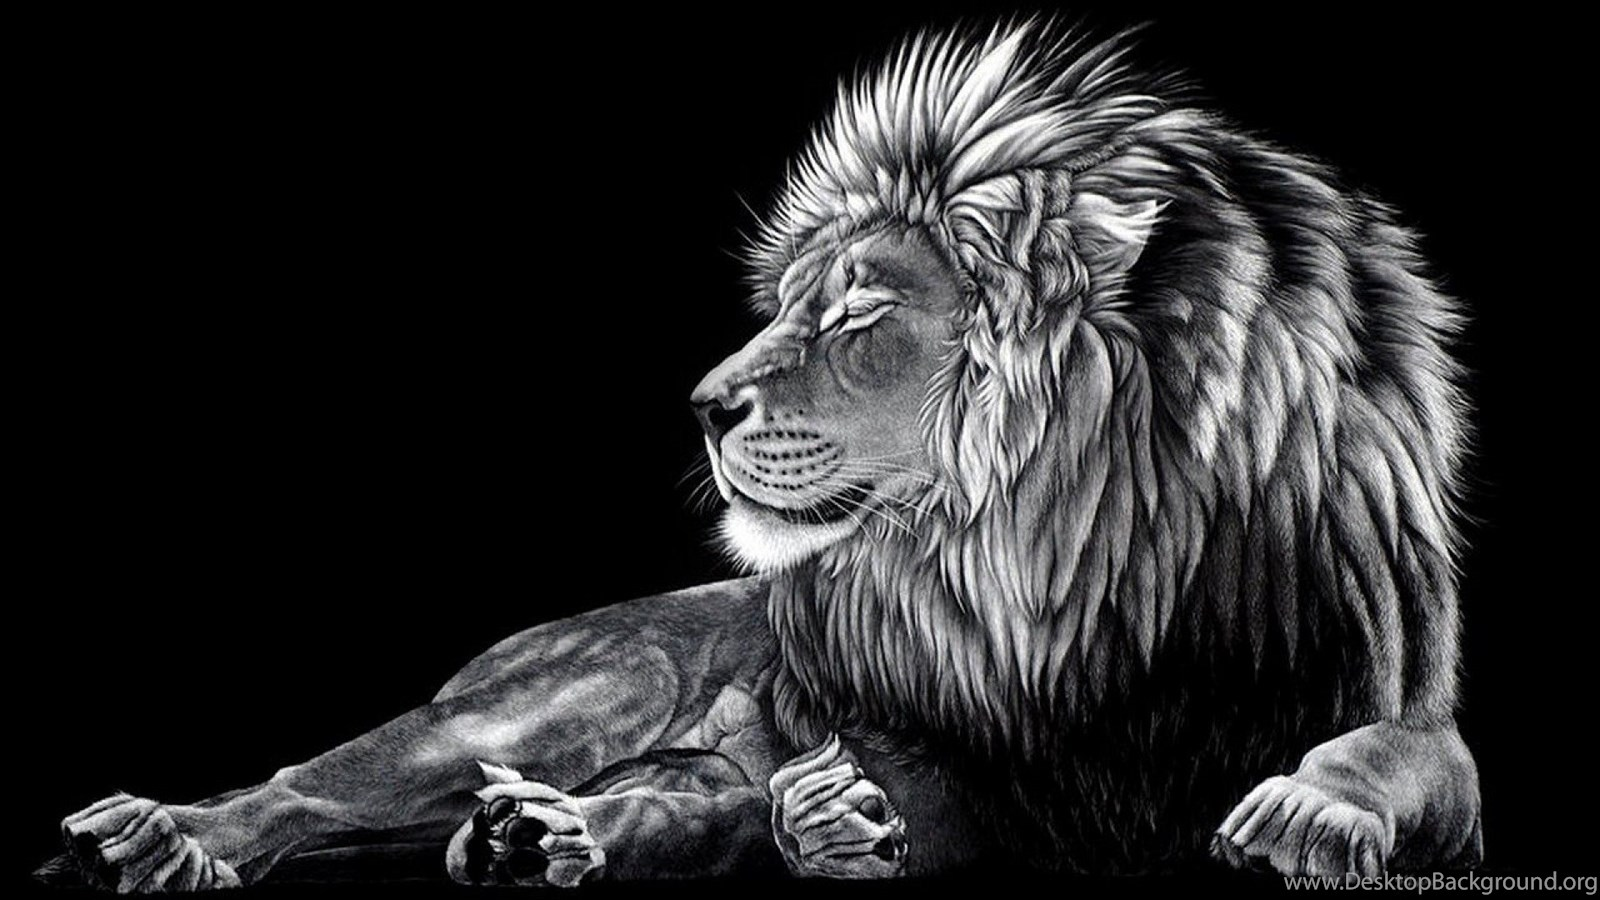 Lion Black And White Wallpapers Mobile Desktop Background